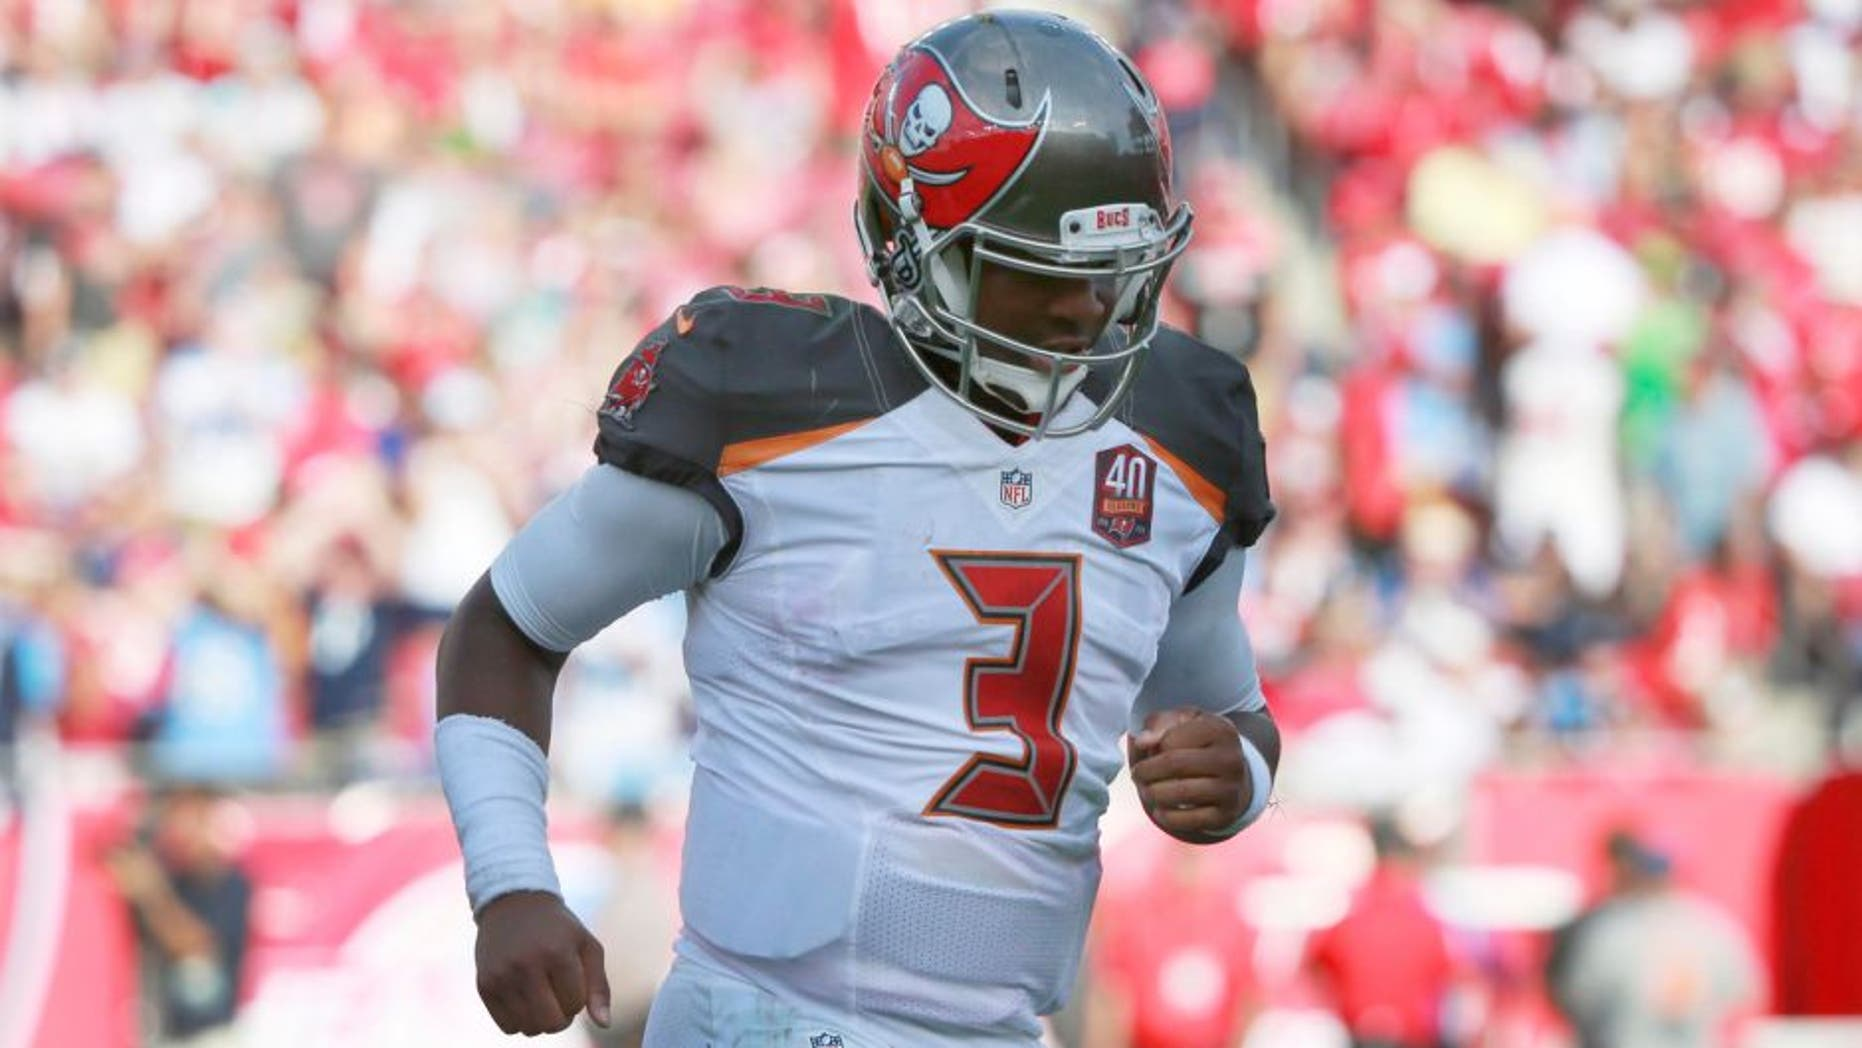 Sep 13, 2015; Tampa, FL, USA; Tampa Bay Buccaneers quarterback Jameis Winston (3) runs off the field at the end of the first half against the Tennessee Titans at Raymond James Stadium. Mandatory Credit: Kim Klement-USA TODAY Sports